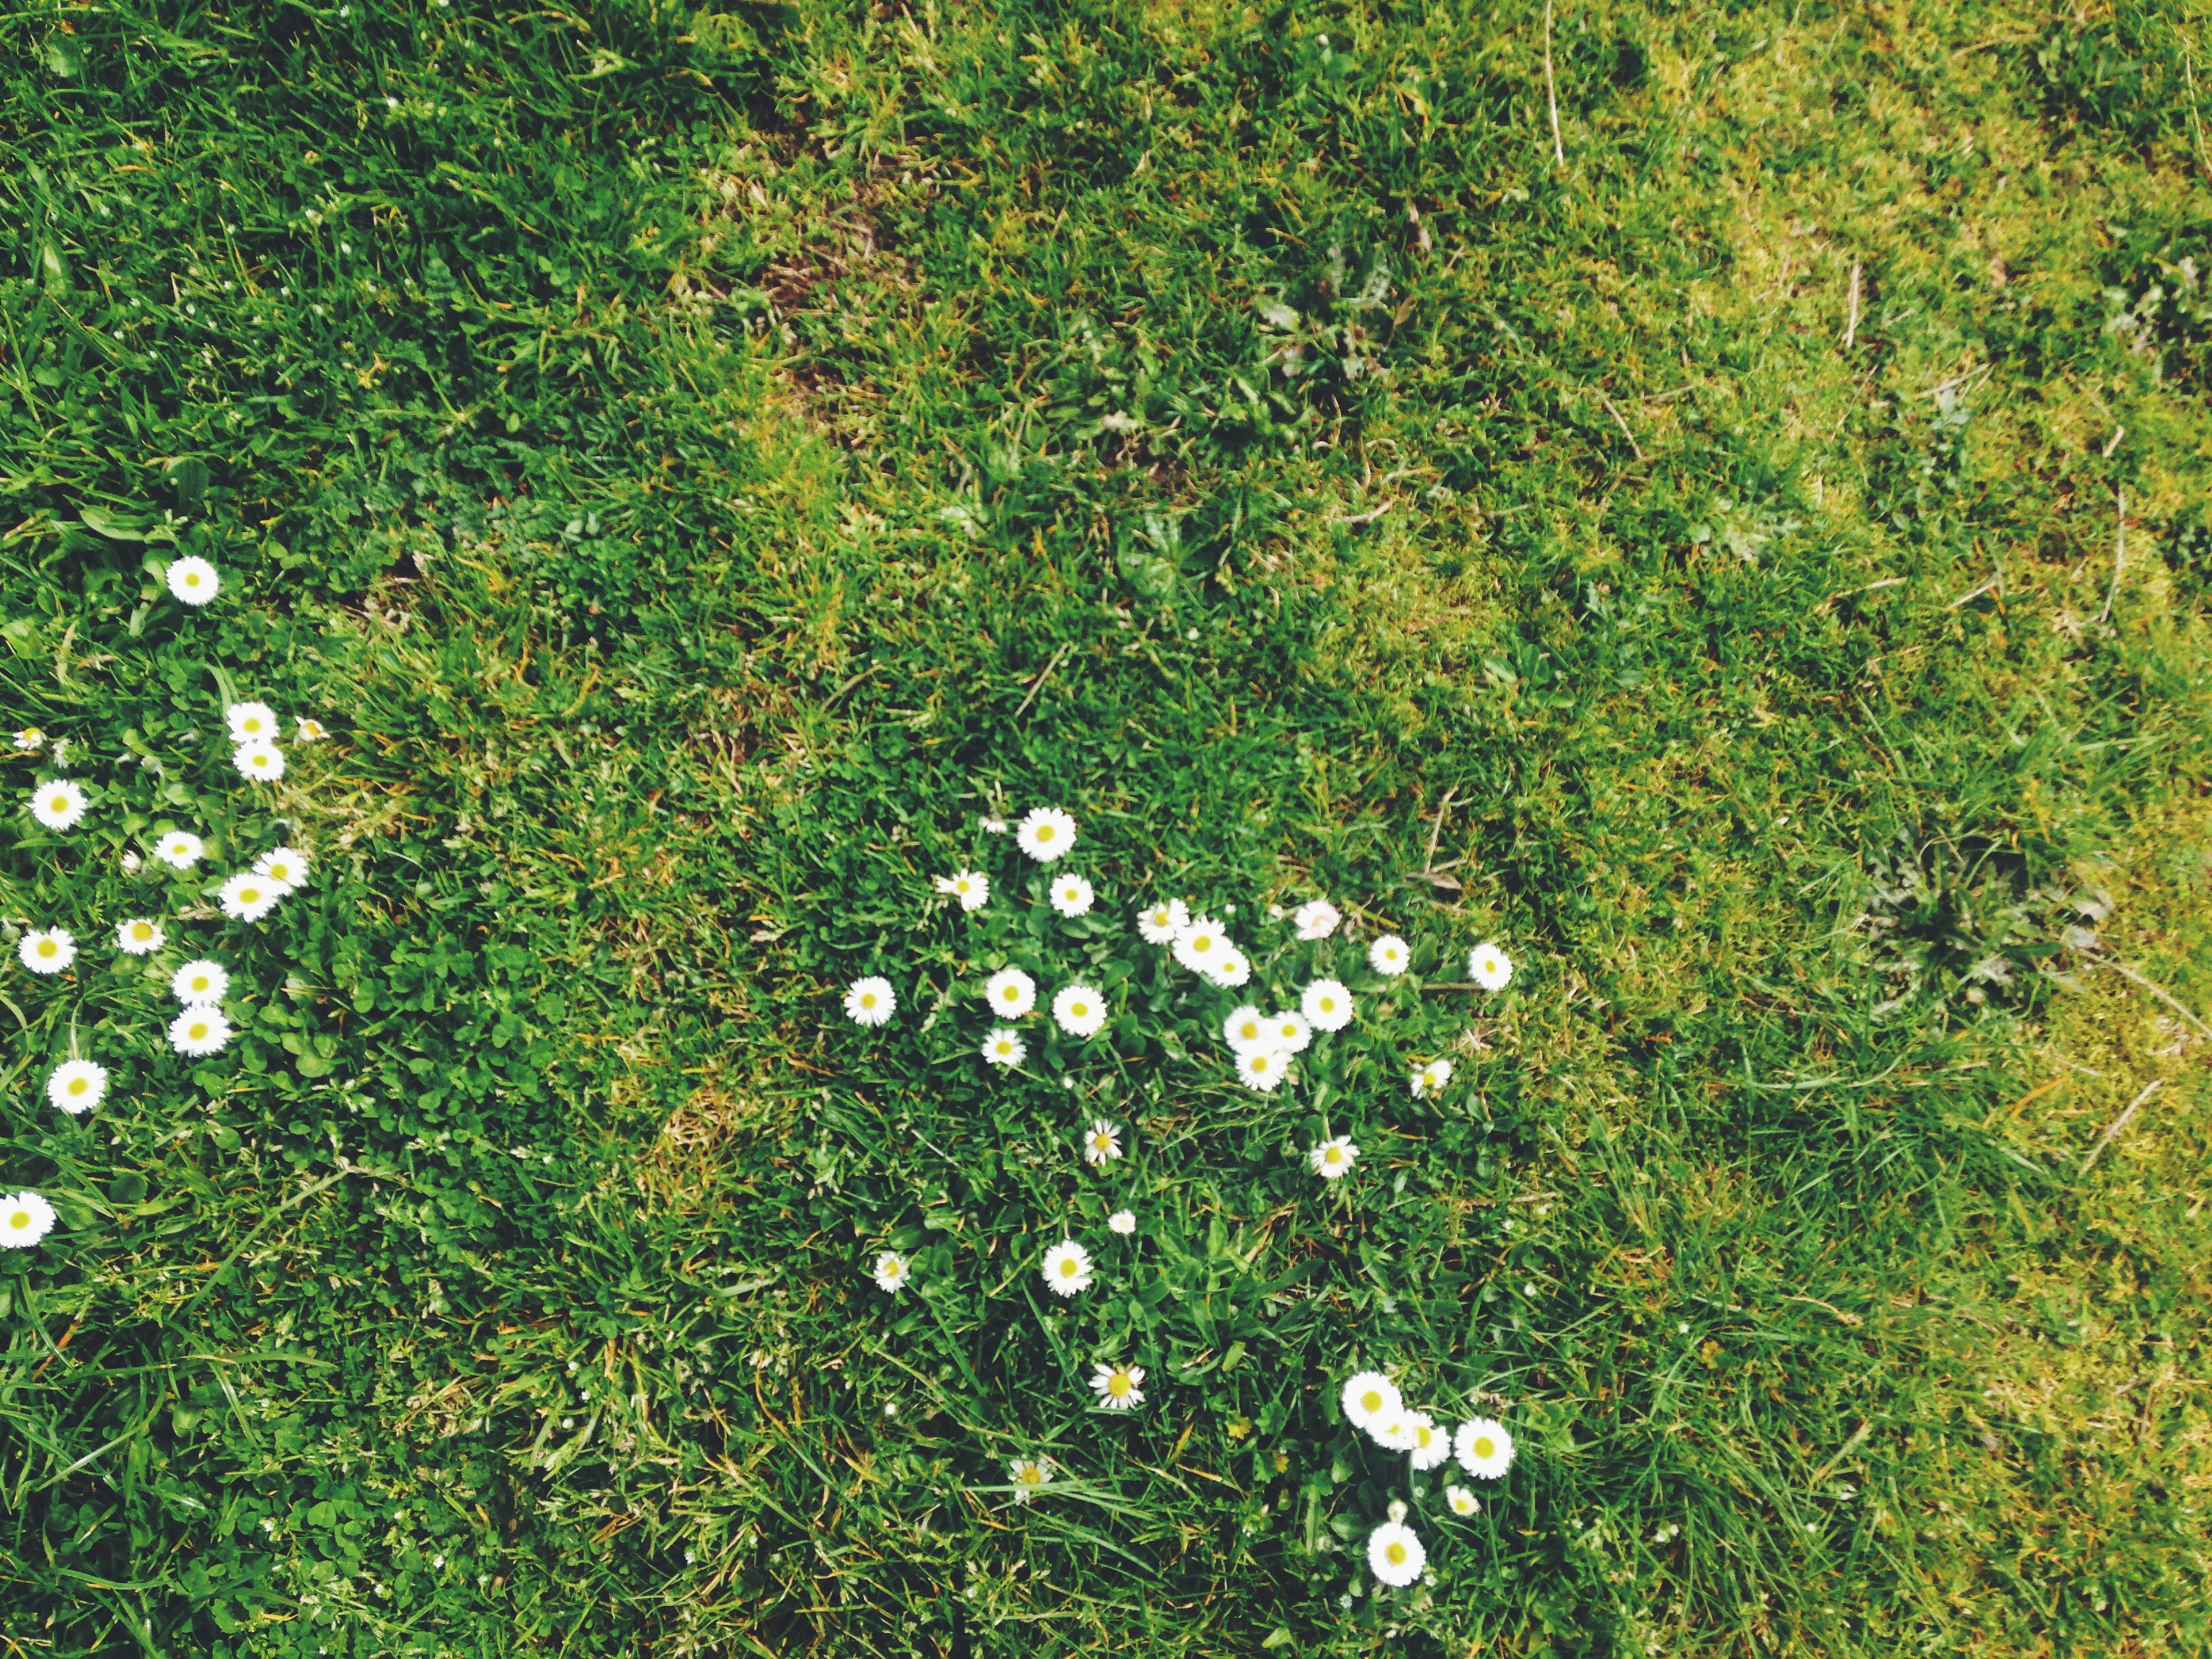 white flower on green grass fiels